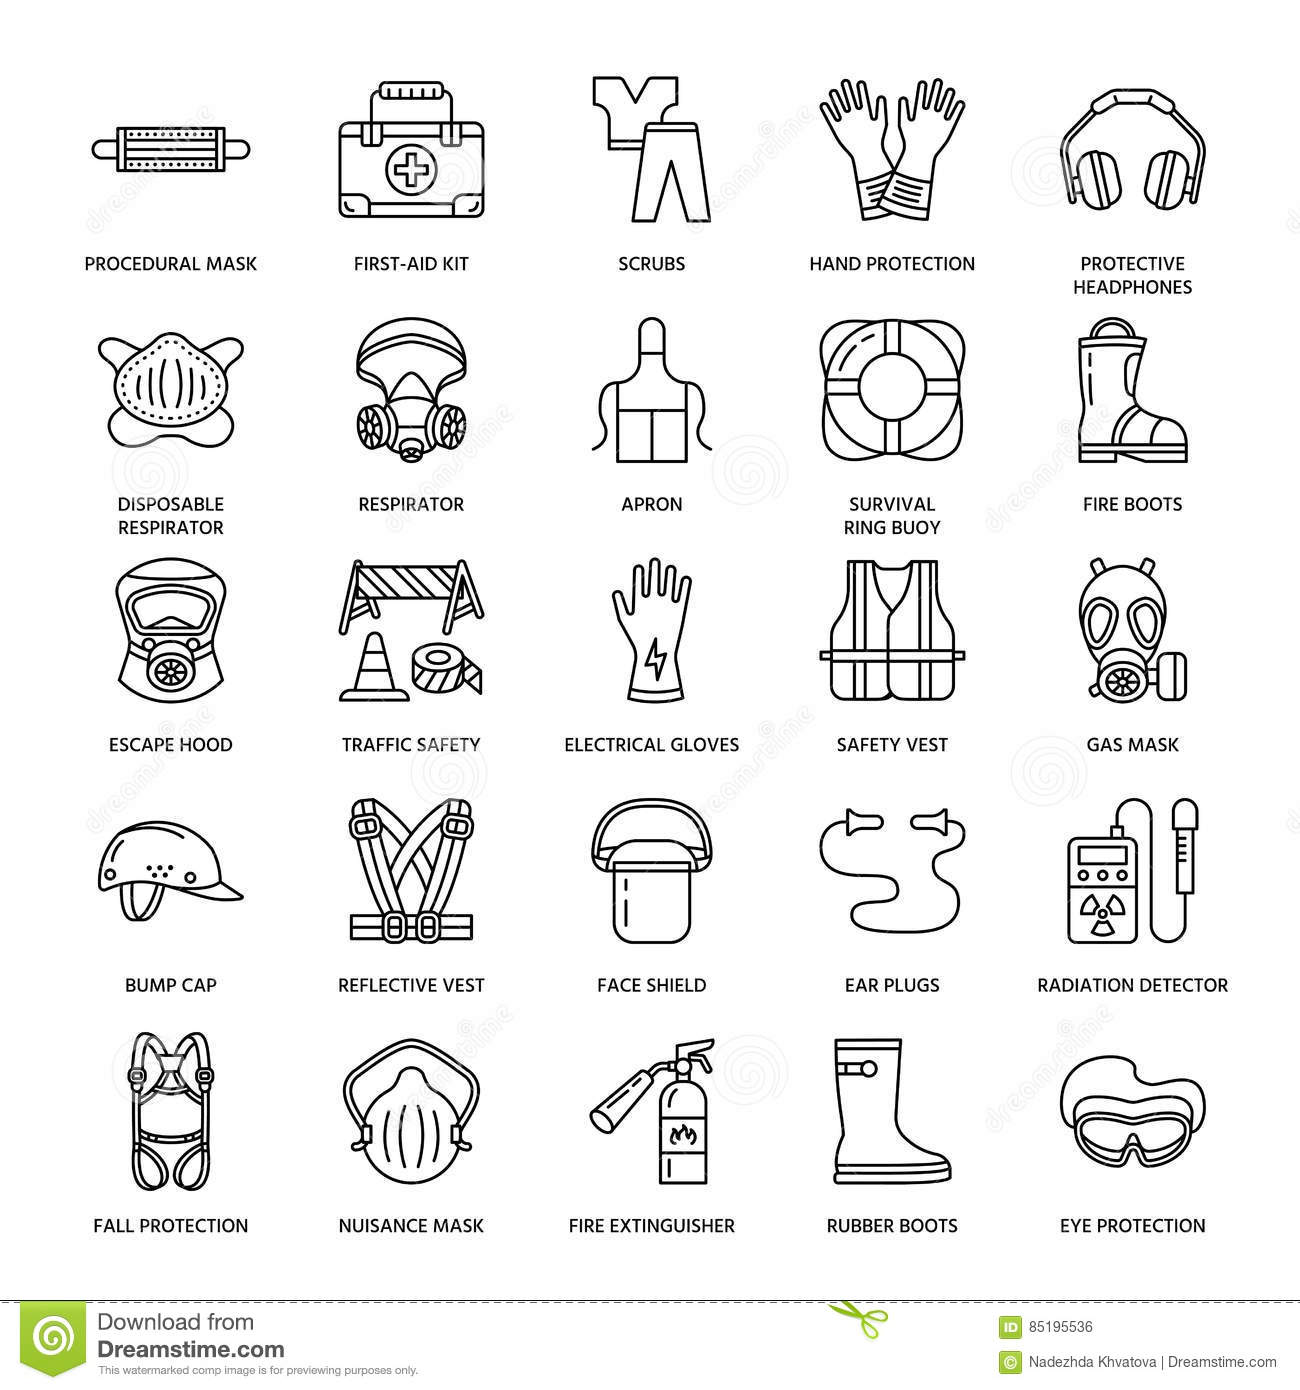 Personal Protective Equipment Line Icons Gas Mask Ring